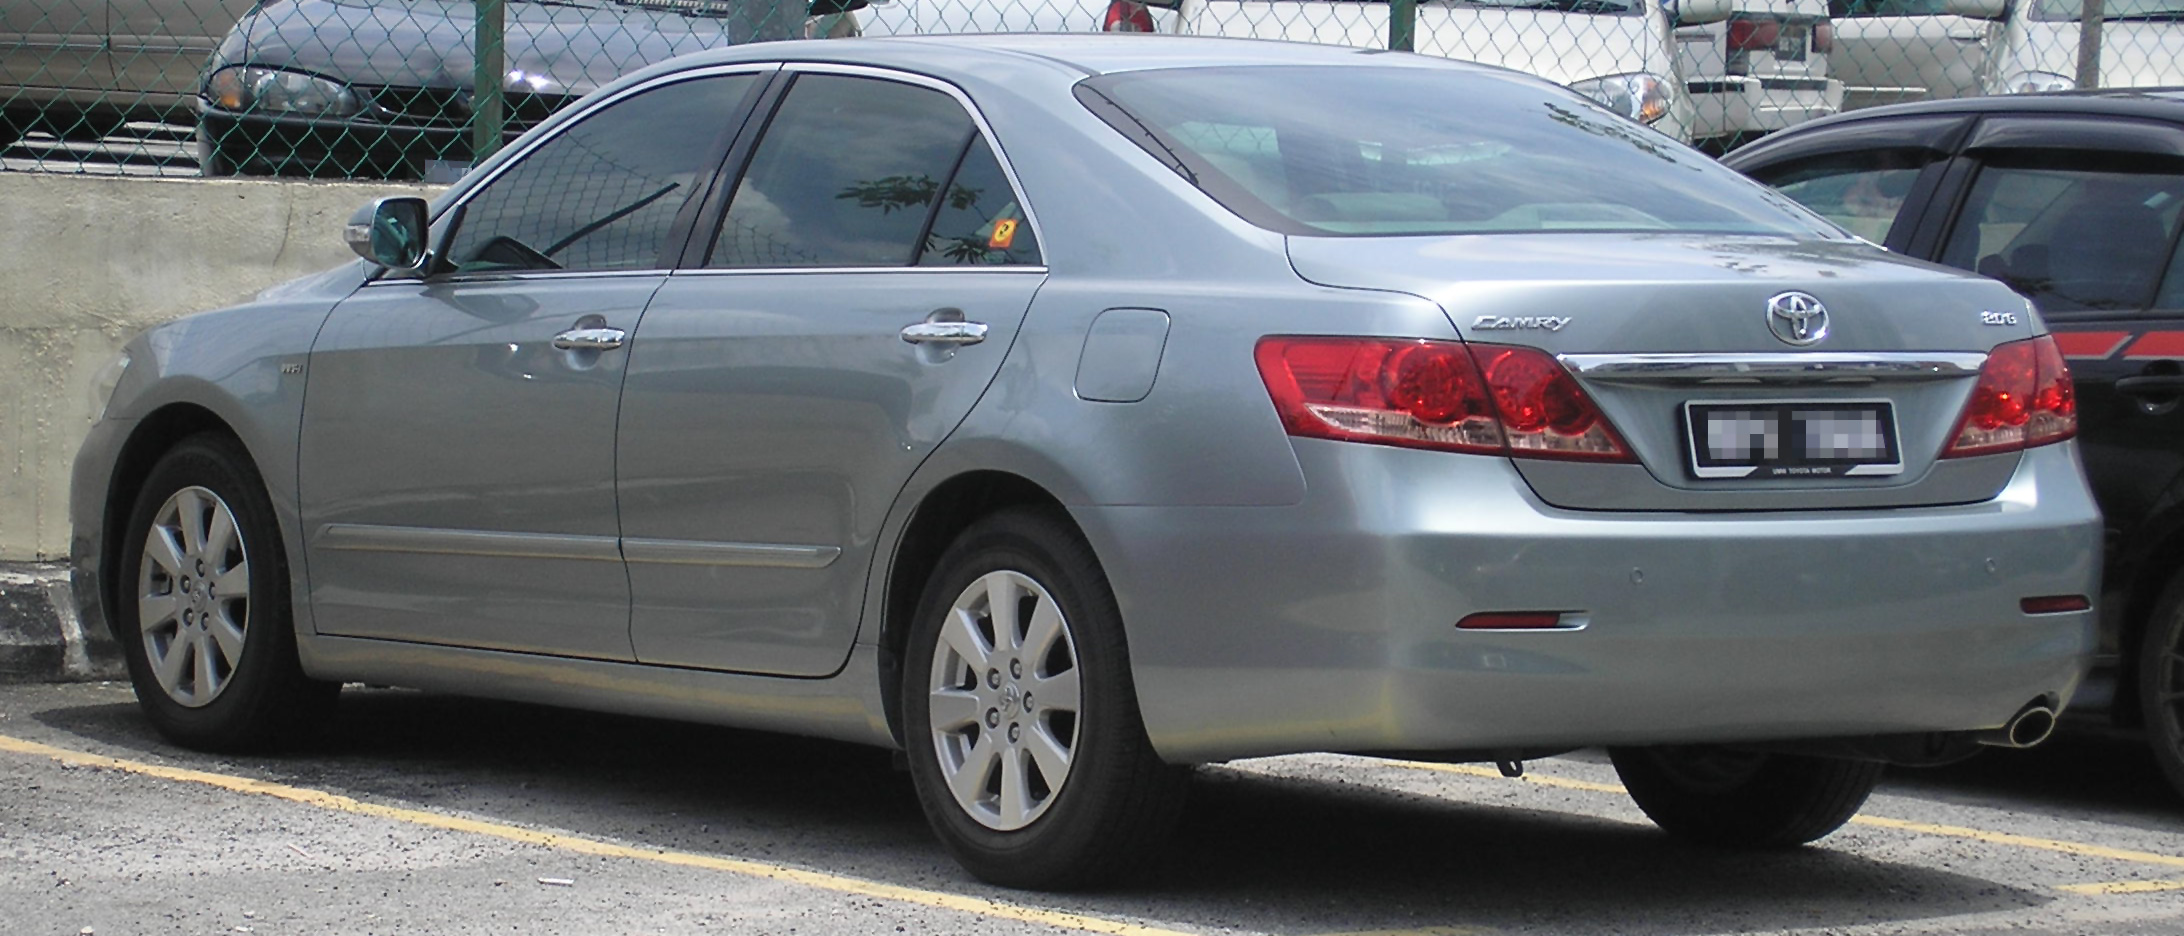 File:Toyota Camry (sixth generation) (rear), Serdang.jpg ...